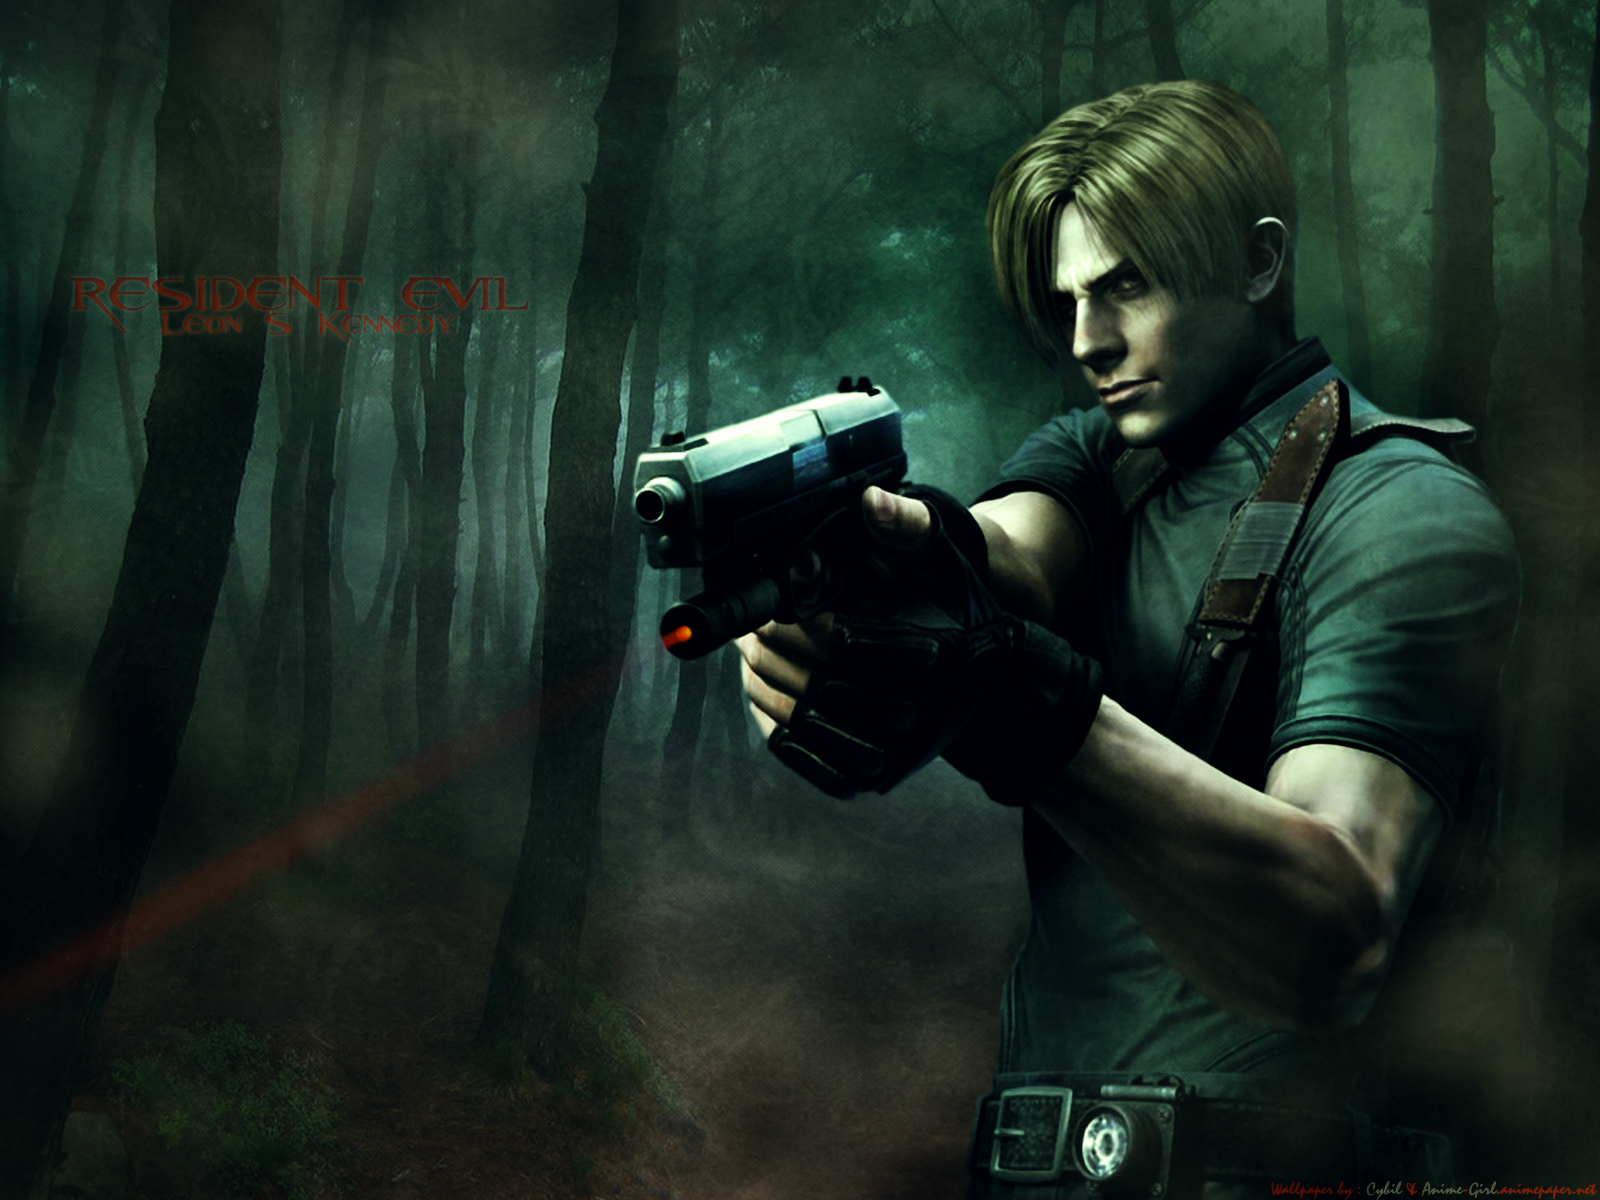 Anime 3d resident evil sexy wallpaper freedownload sex picture